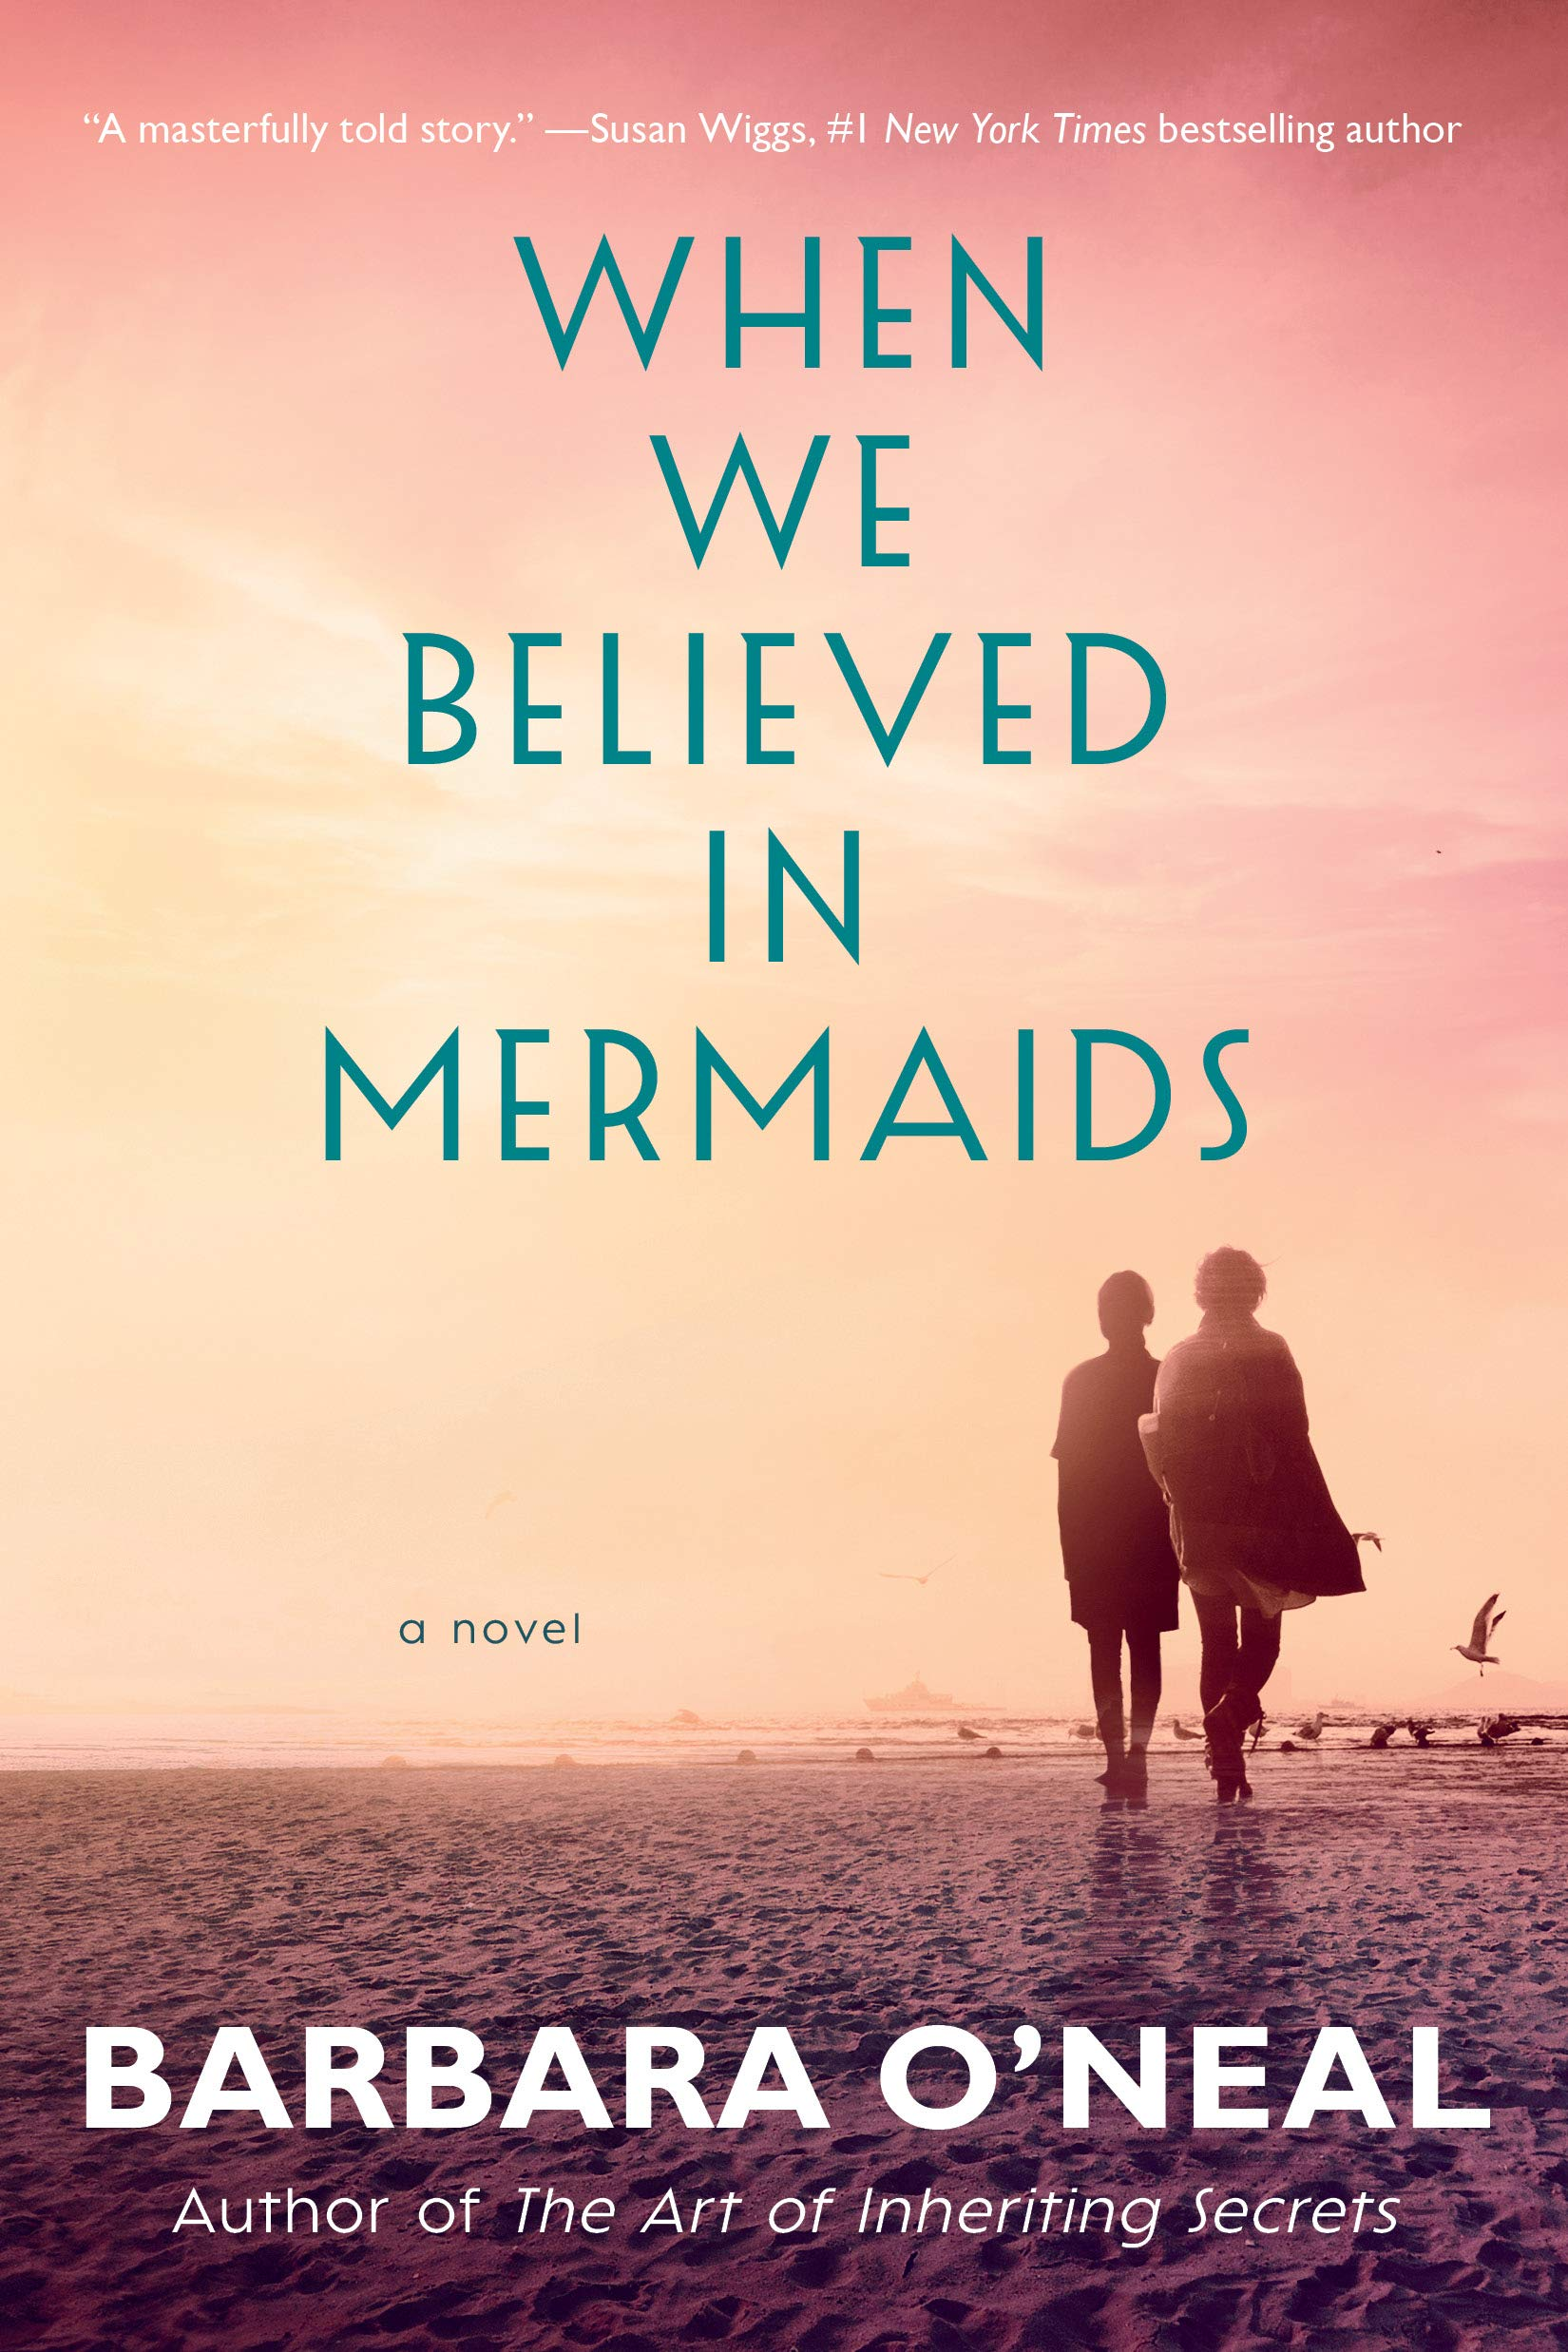 Barbara O'Neal's WHEN WE BELIEVED IN MERMAIDS